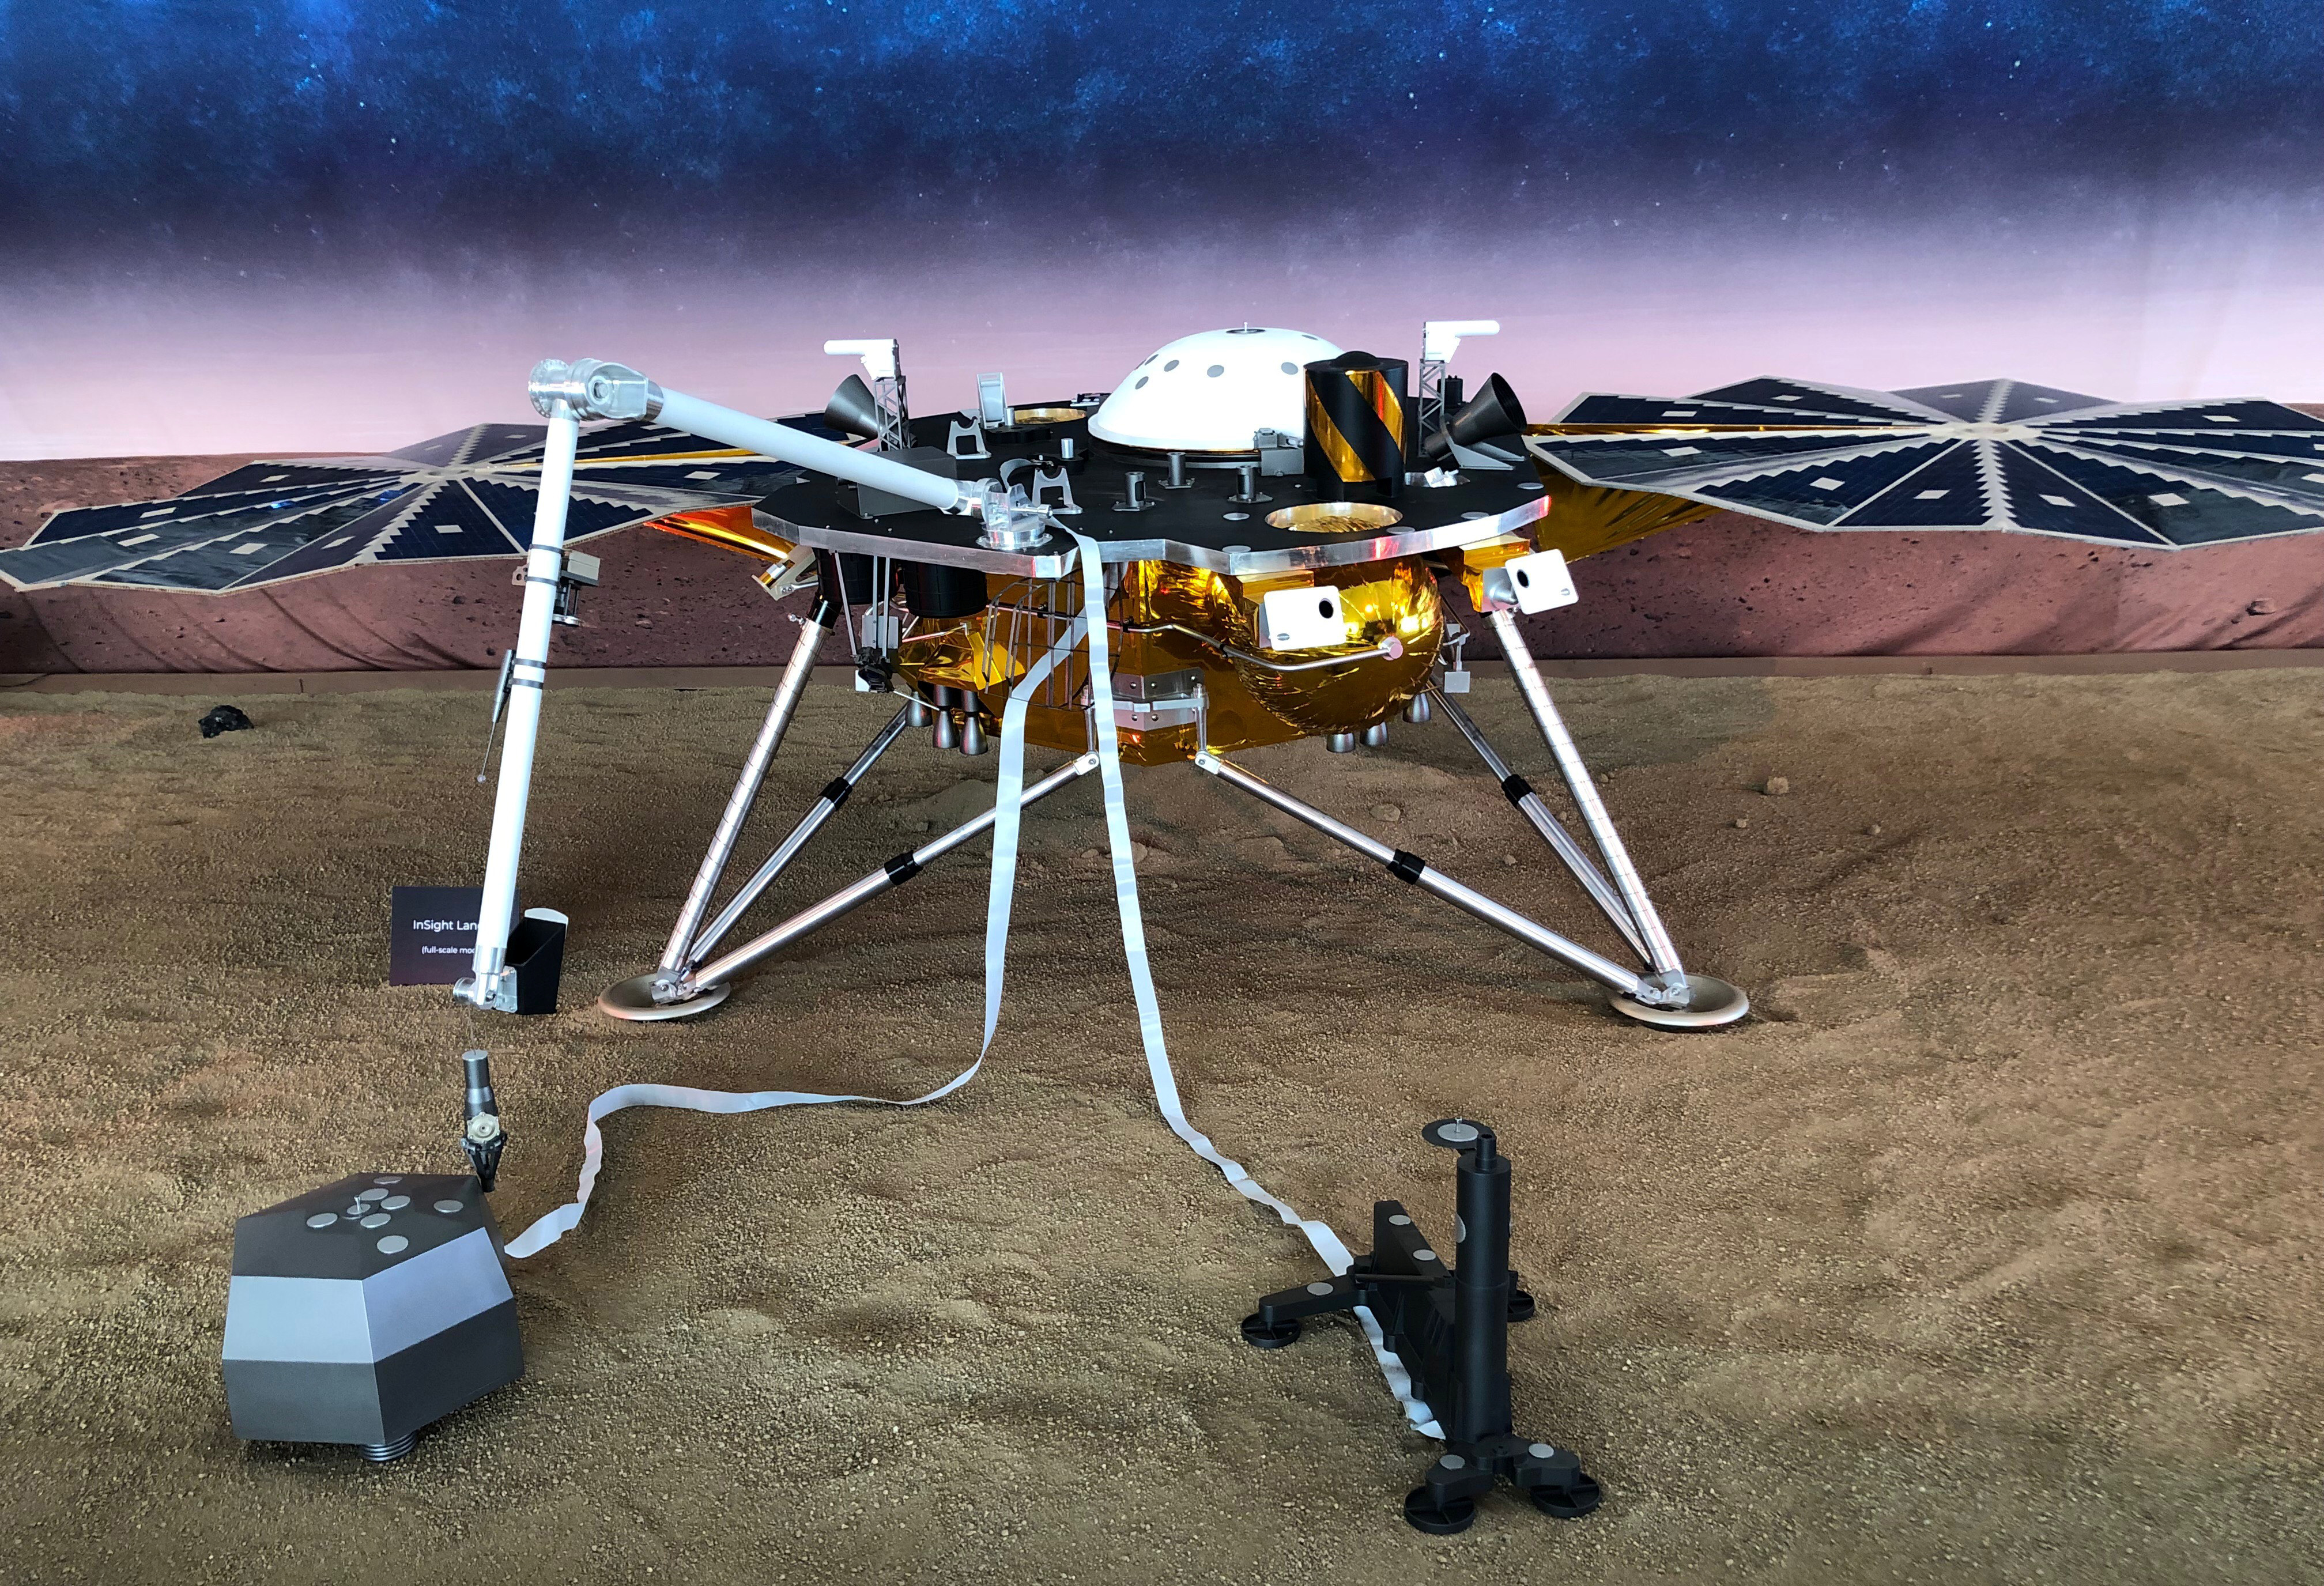 A full-scale replica of NASA's Mars InSight, a robotic stationary lander that marks the first spacecraft designed to study the deep interior of the Red Planet, or any distant world, is seen inside a large tent on the campus of NASA's Jet Propulsion Laboratory (JPL) in Pasadena, California, U.S., November 21, 2018. REUTERS/Steve Gorman